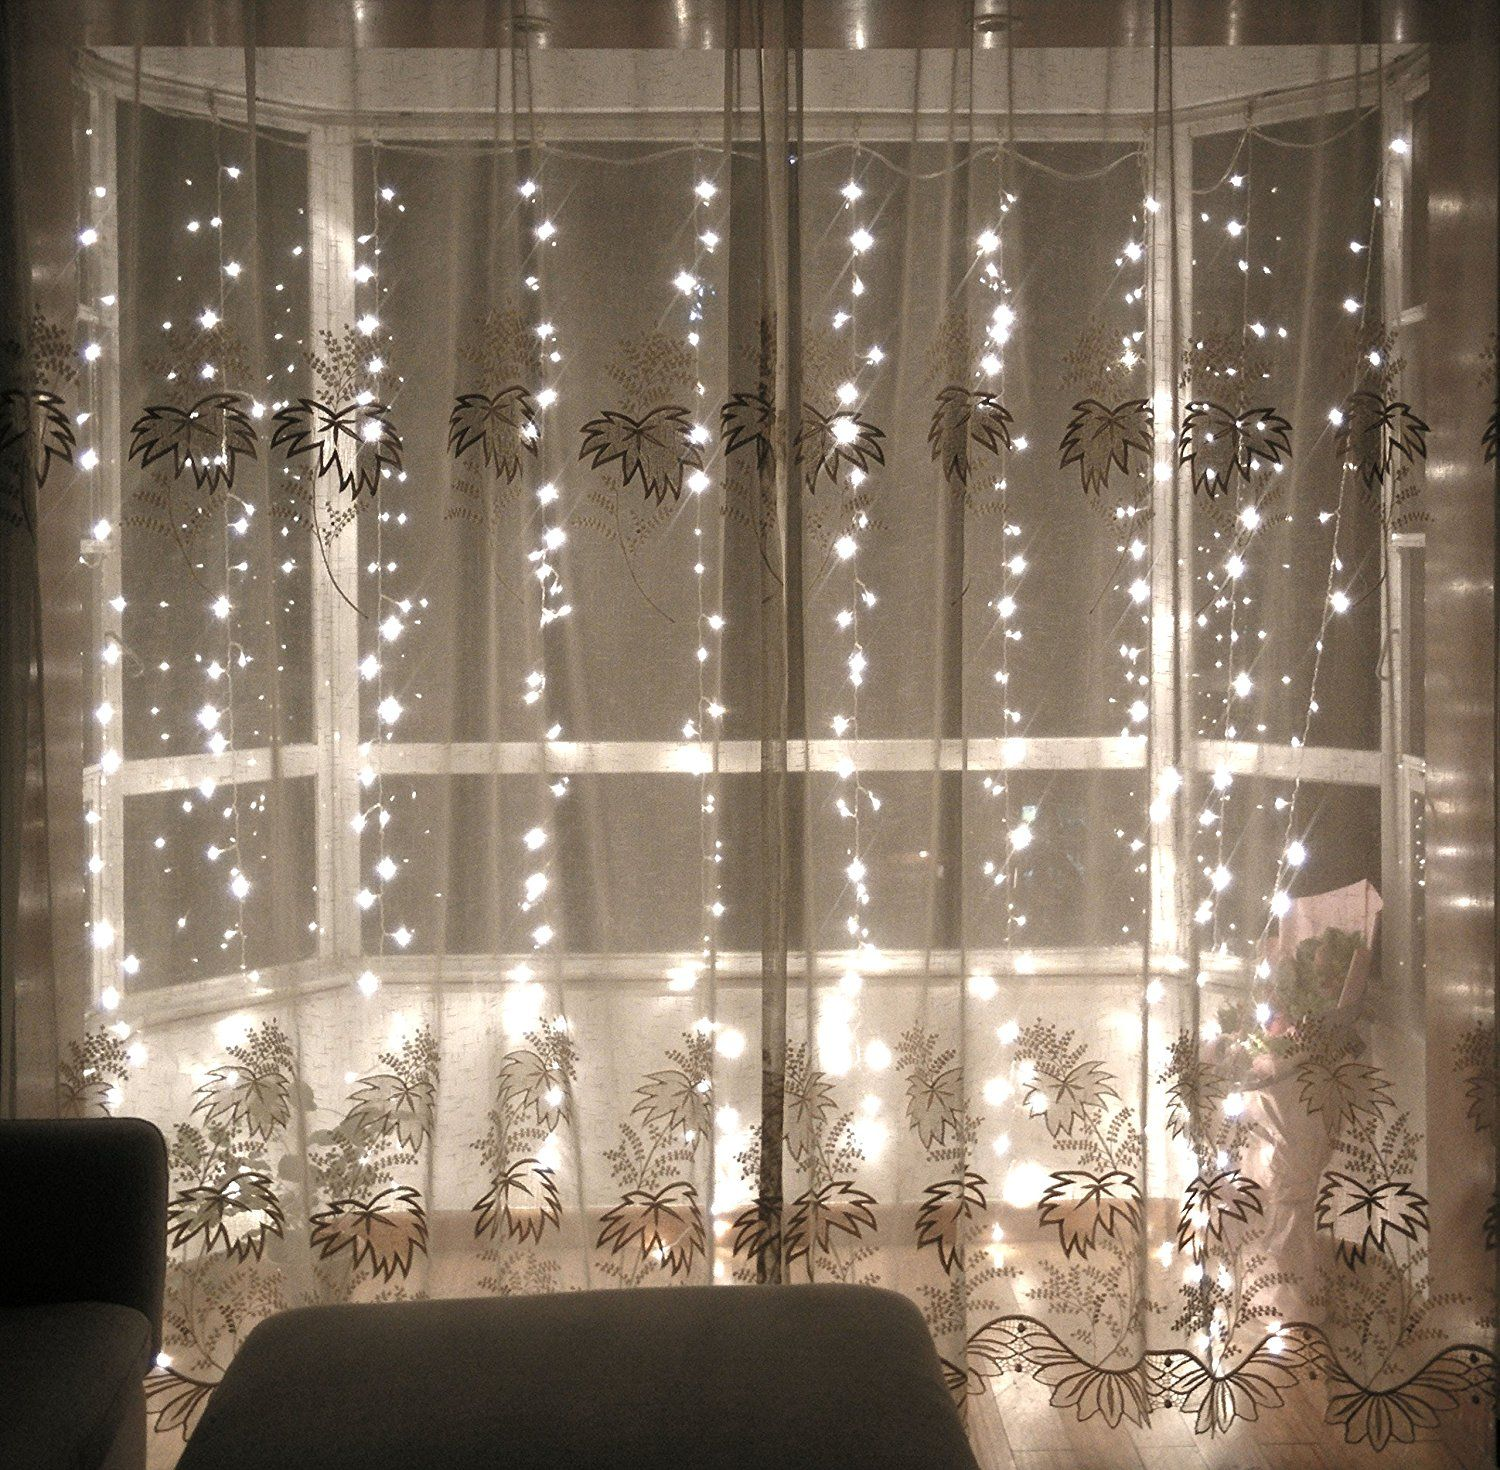 Lebefe 9 84ft X 9 84ft 300 Led Icicle Curtain Lights Christmas